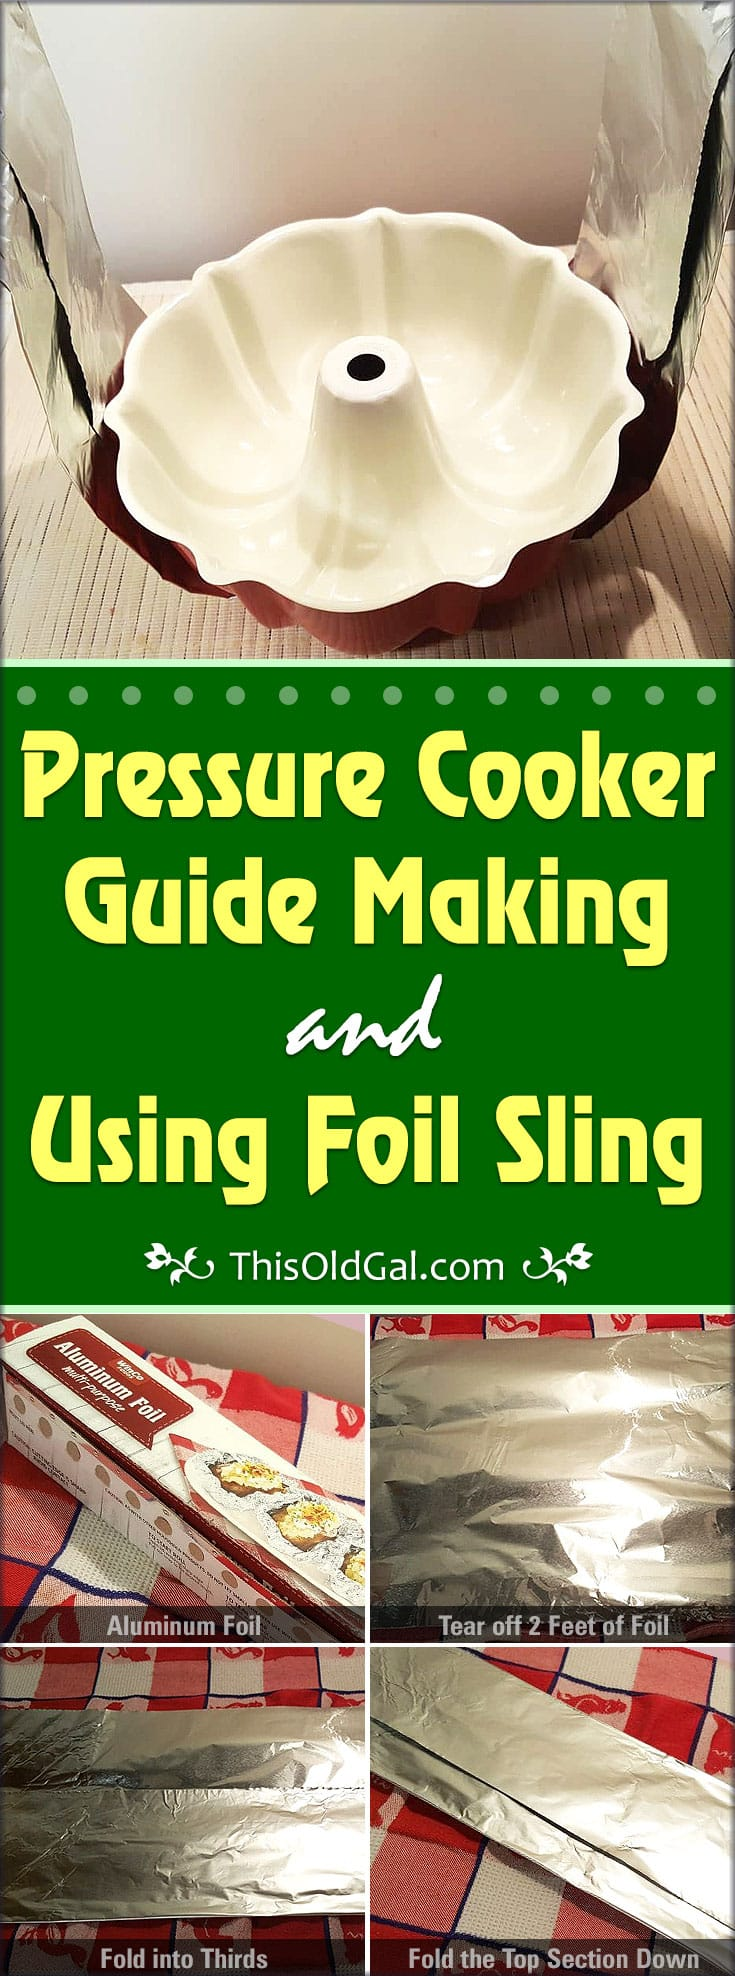 Pressure Cooker Guide Making & Using Foil Sling